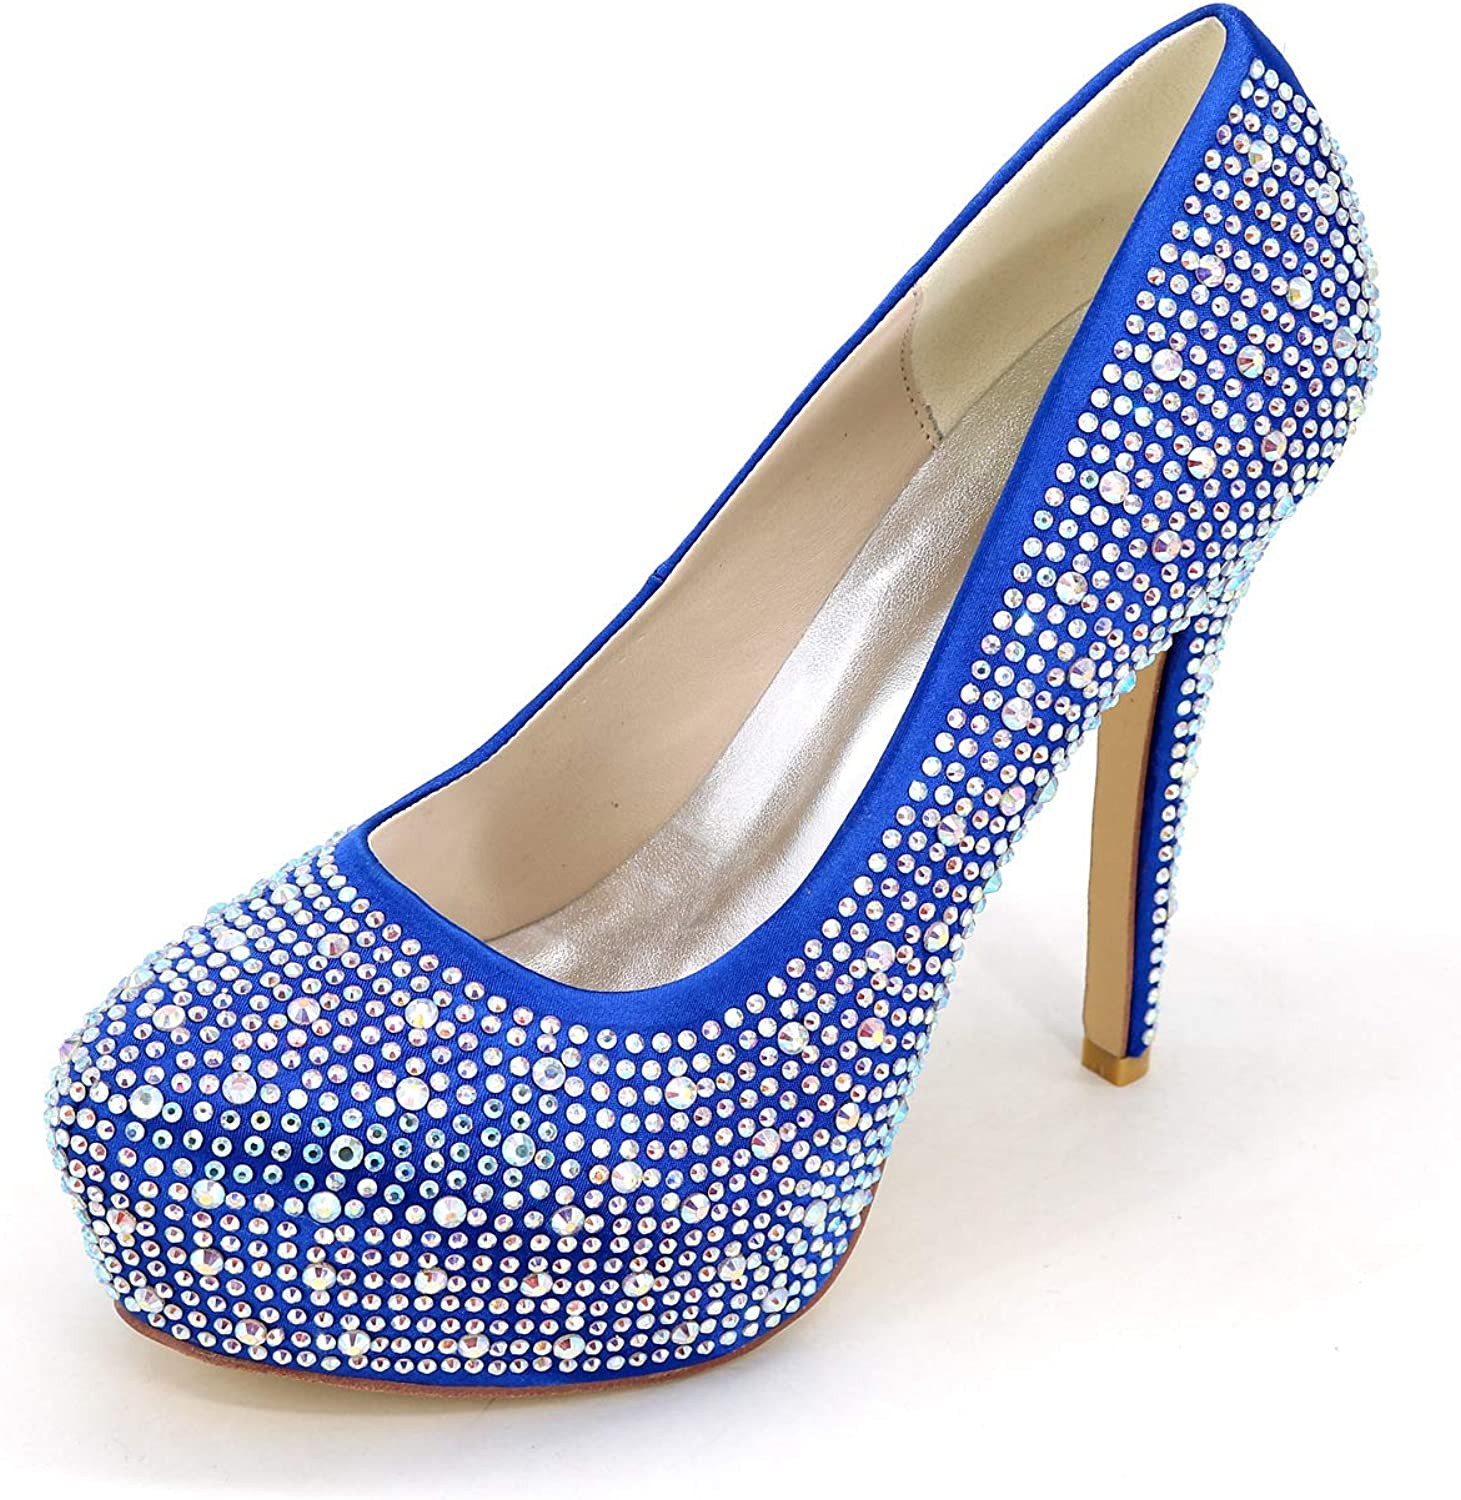 LLBubble Women High Heels Platform Beaded Wedding shoes Slip-on Round Toe Formal Party Dress Bridal Pumps 88600-02